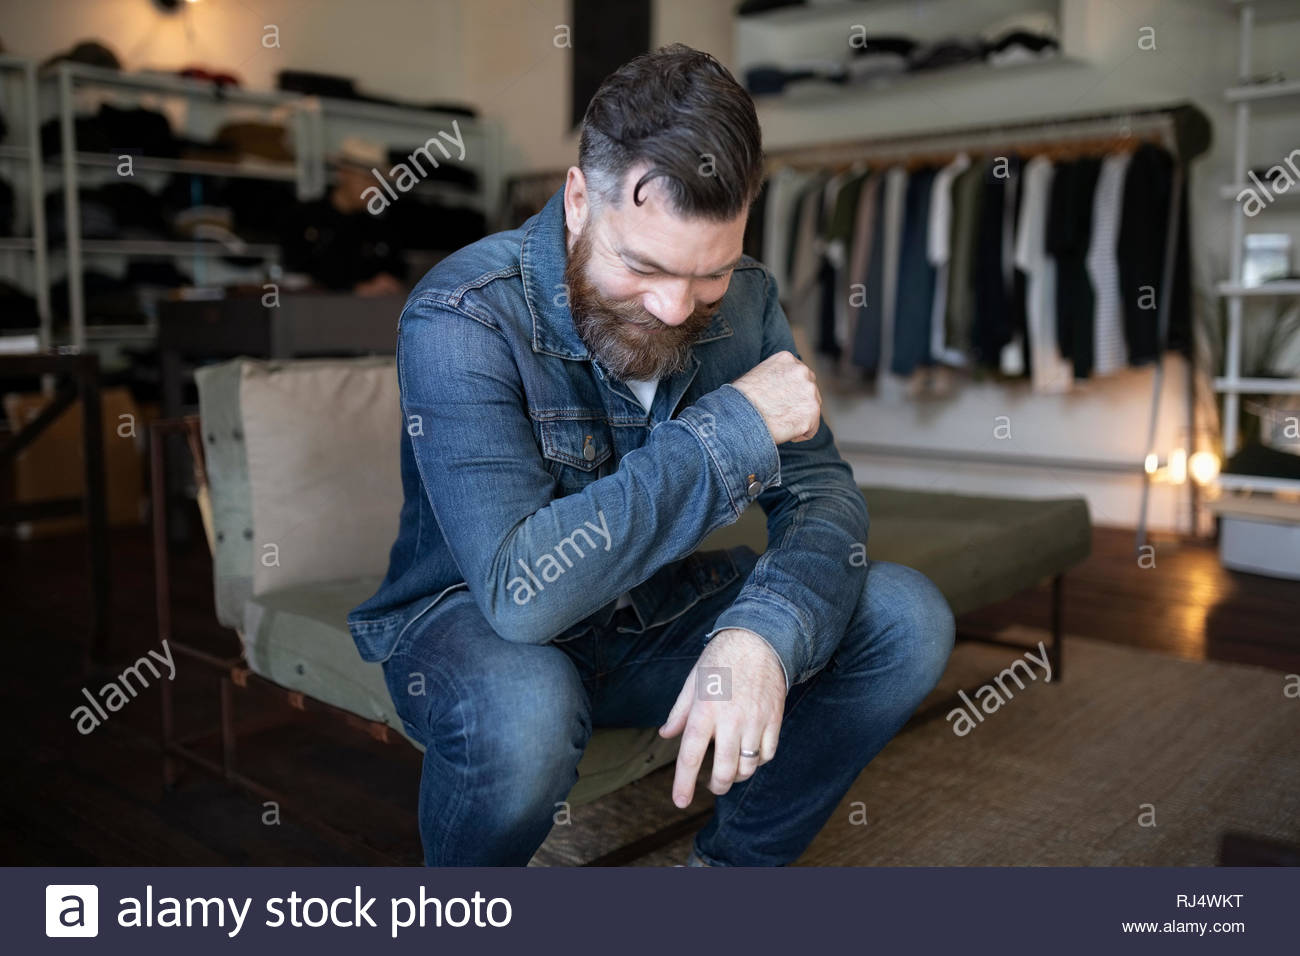 Smiling man with beard en magasin de vêtements de mode masculine Photo Stock